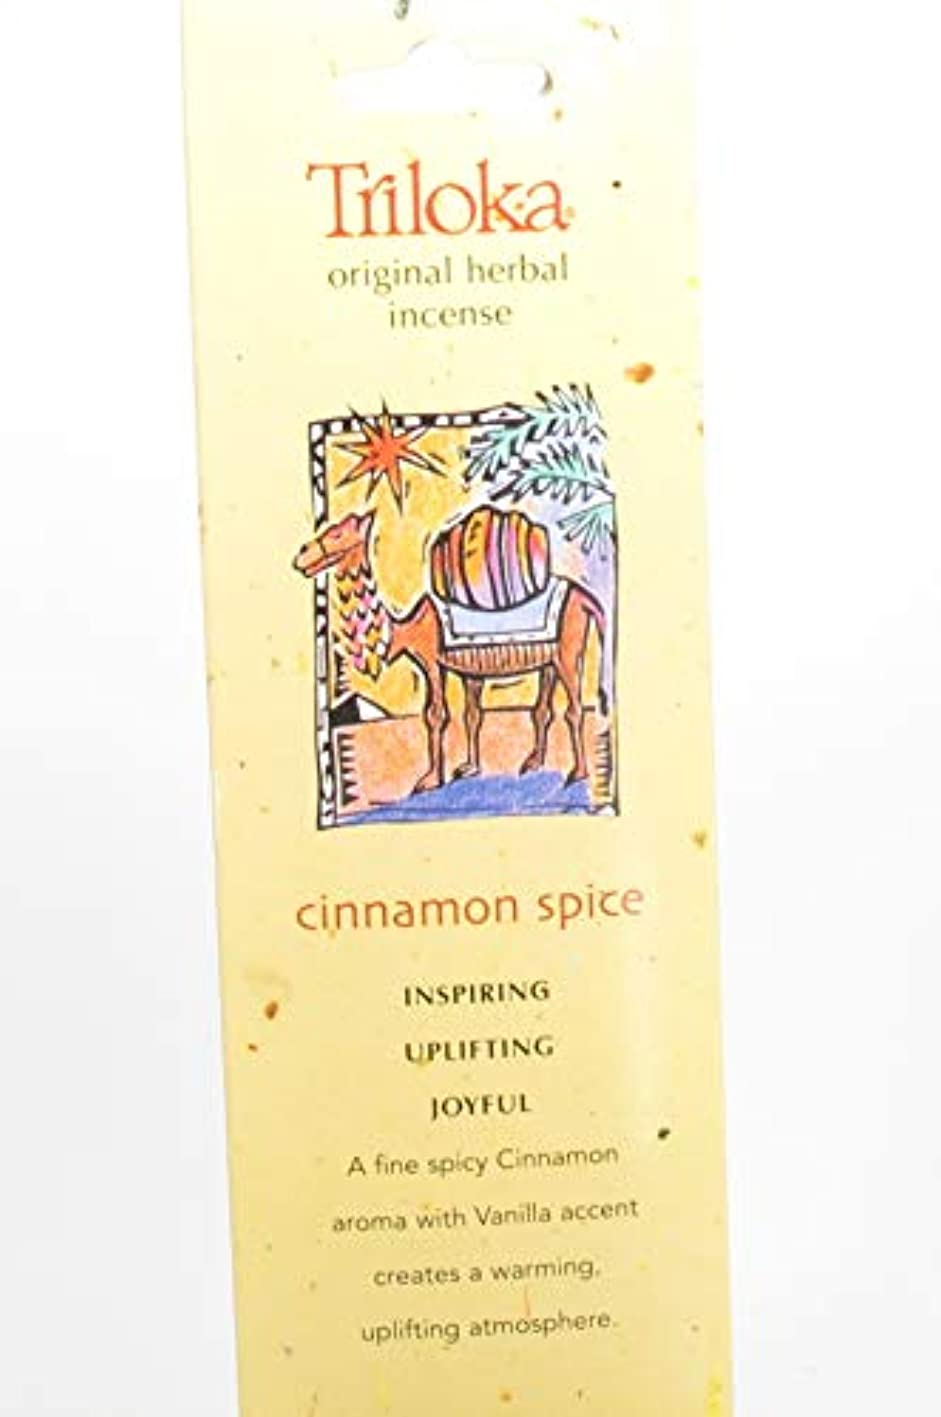 ベット他に放棄されたCinnamon Spice – Triloka元Herbal Incense Sticks